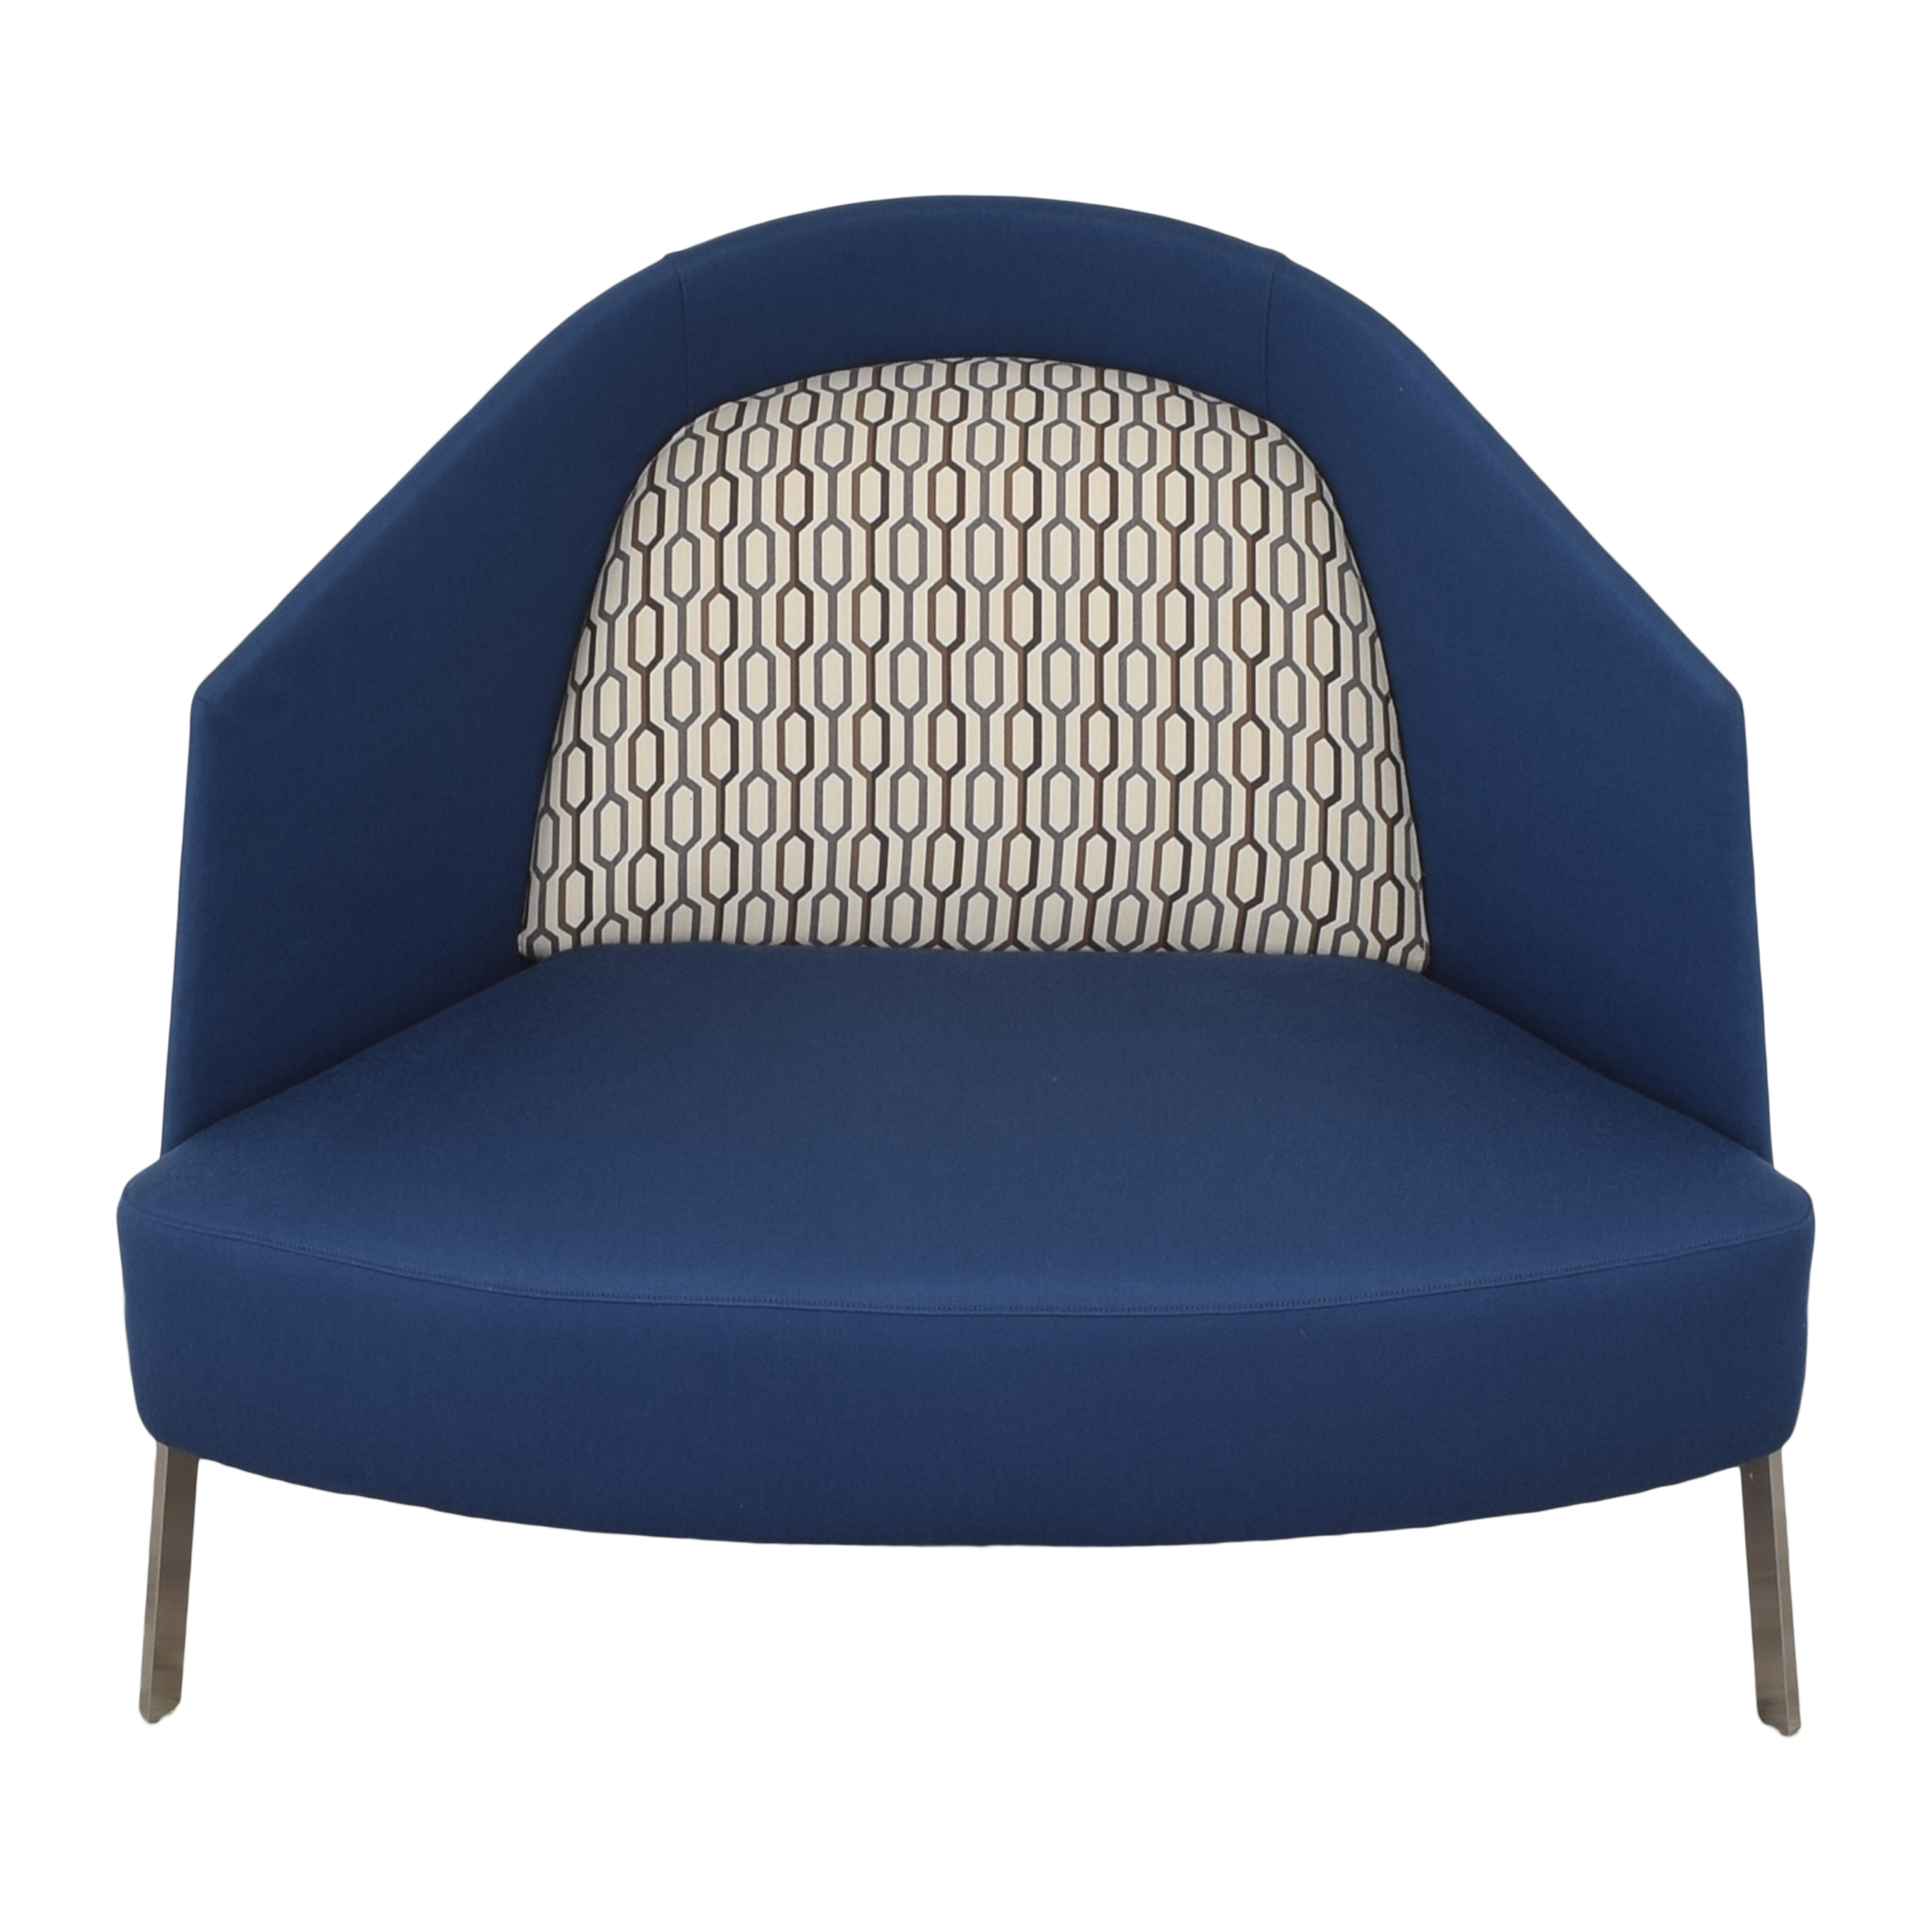 TK Collections Studio TK Fractals Lounge Chair ma